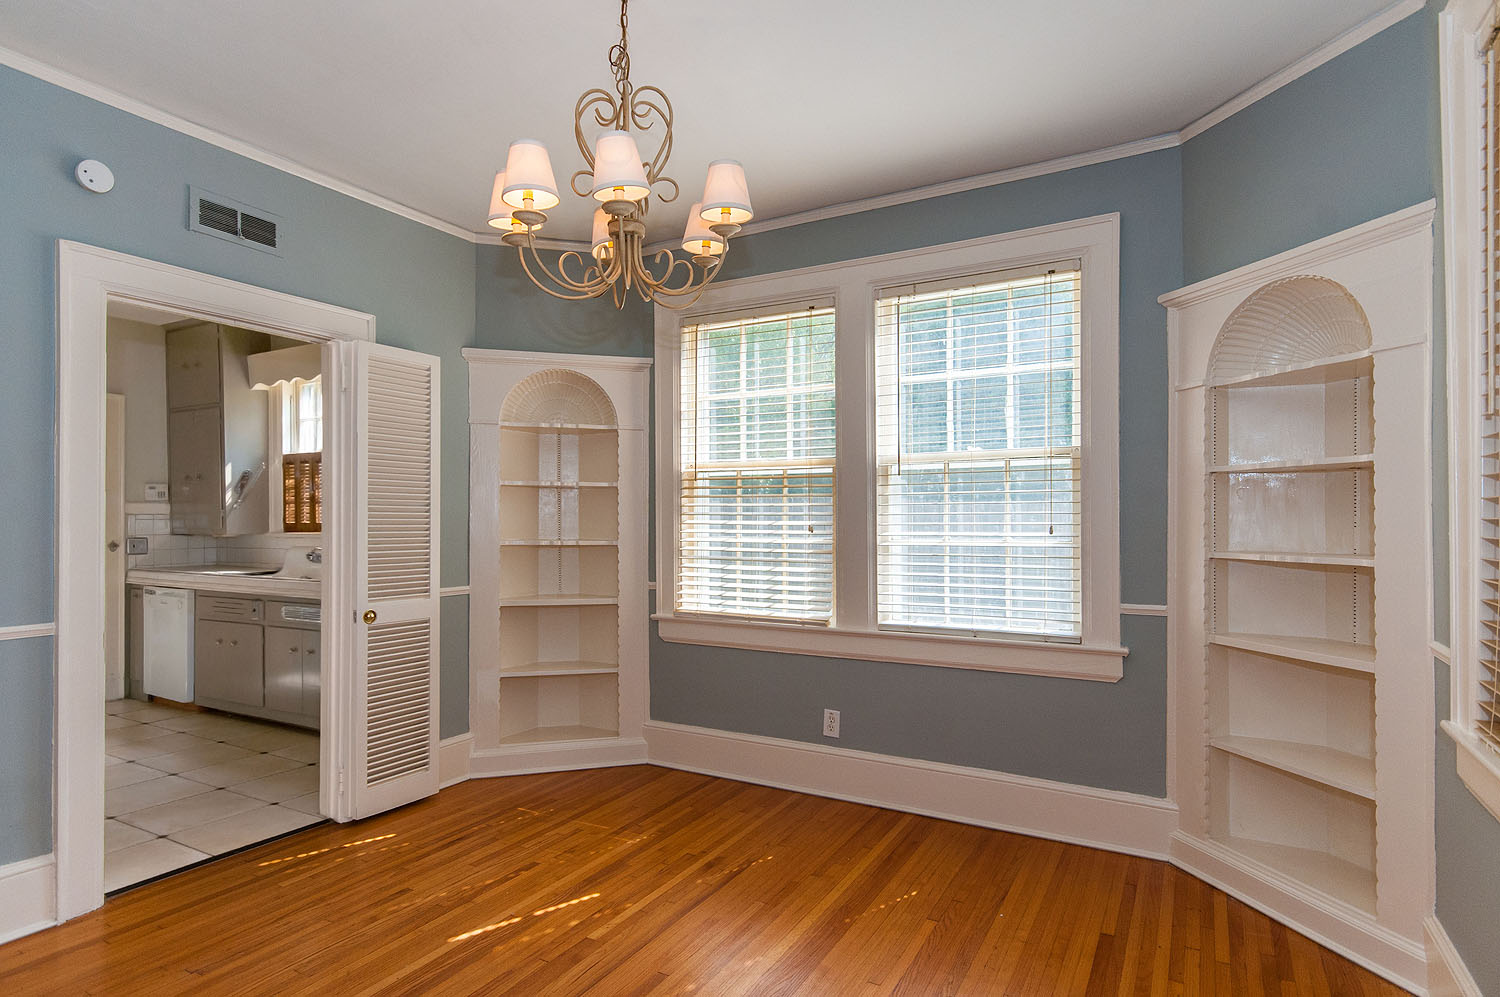 Professional Dining Room With Built In Corner China Cabinets At 3417  Wellington In Historic Cloverdale, ...